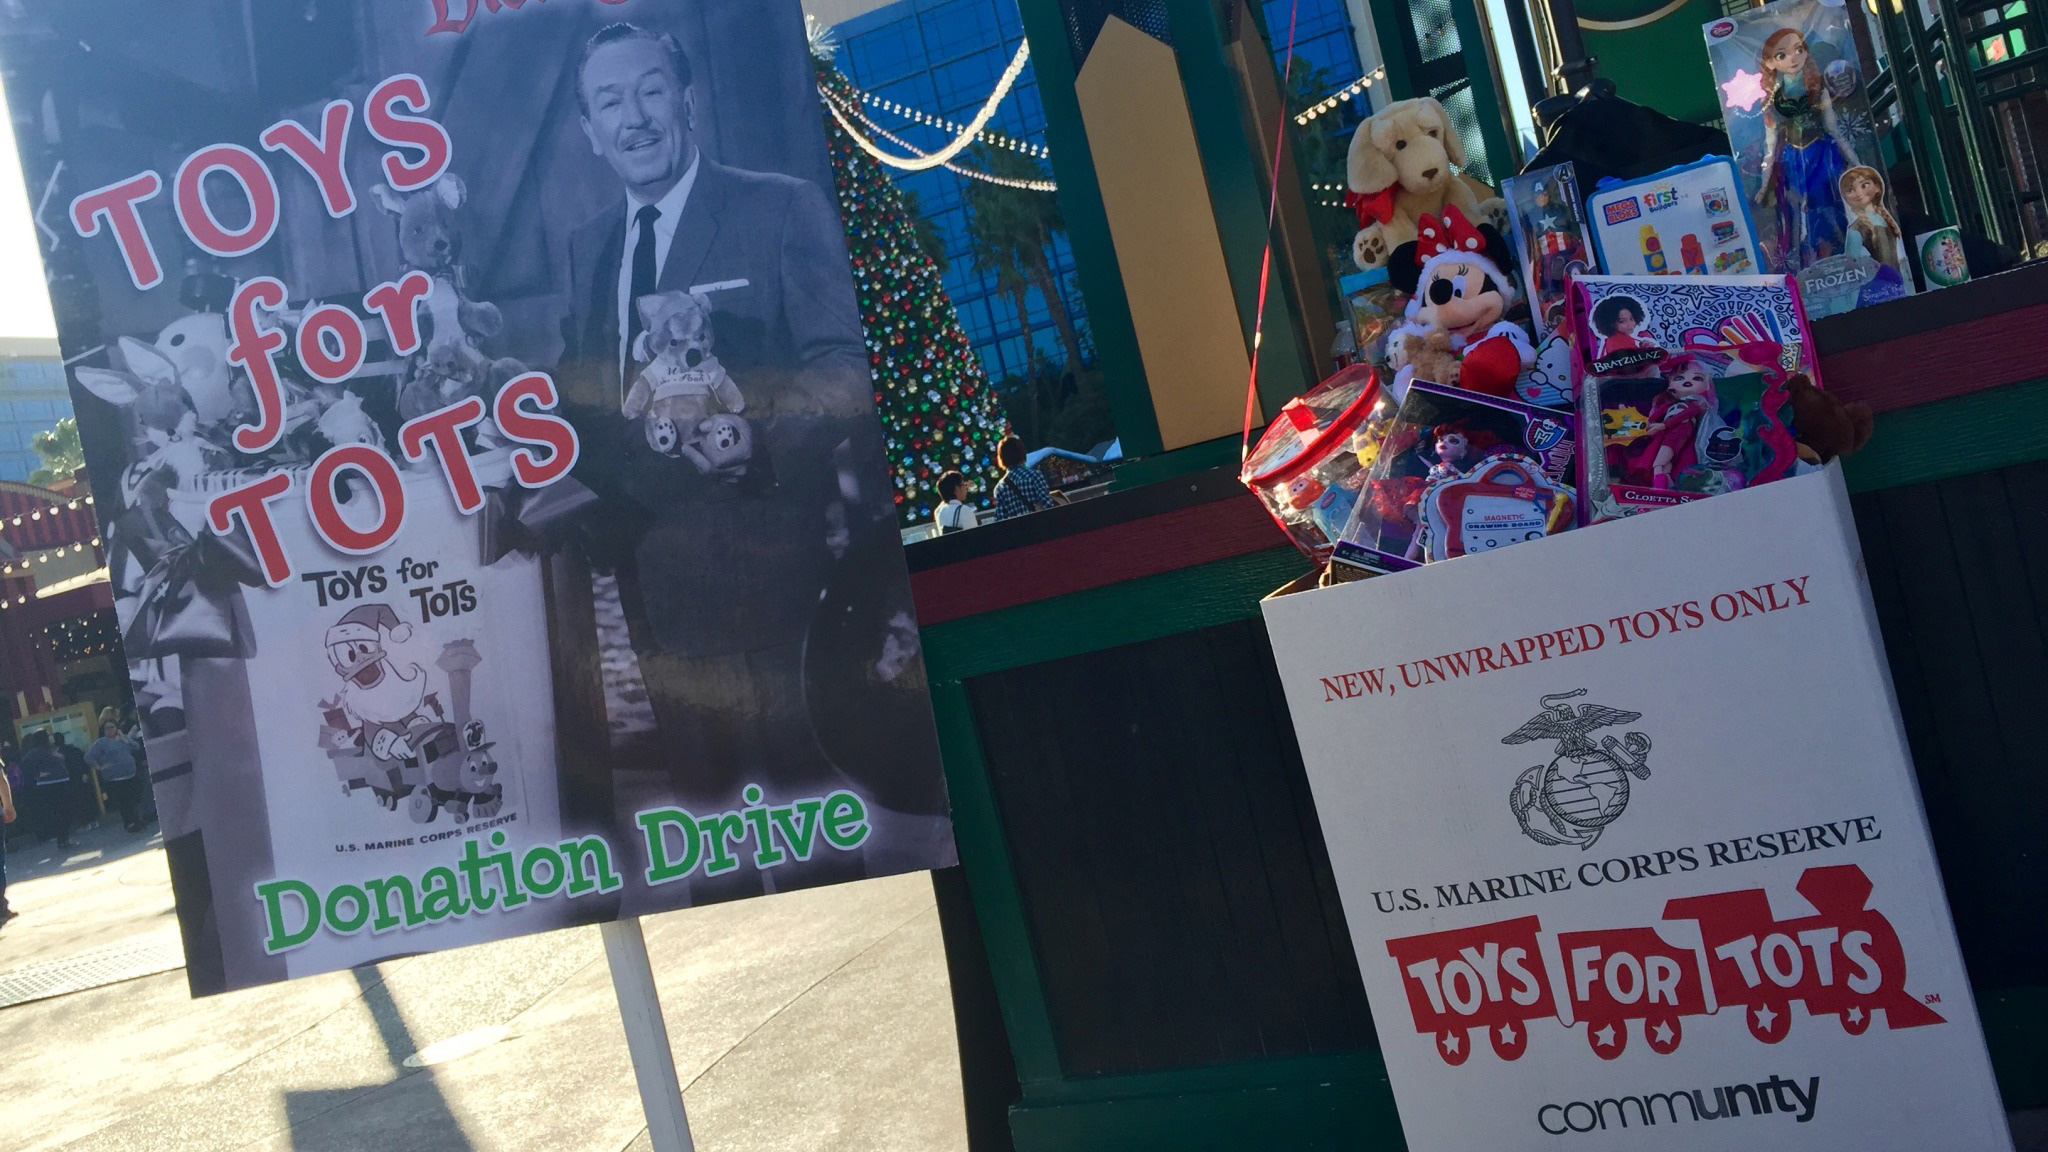 Toys for Tots Donation Drive Comes to Downtown Disney District December 2 and 3